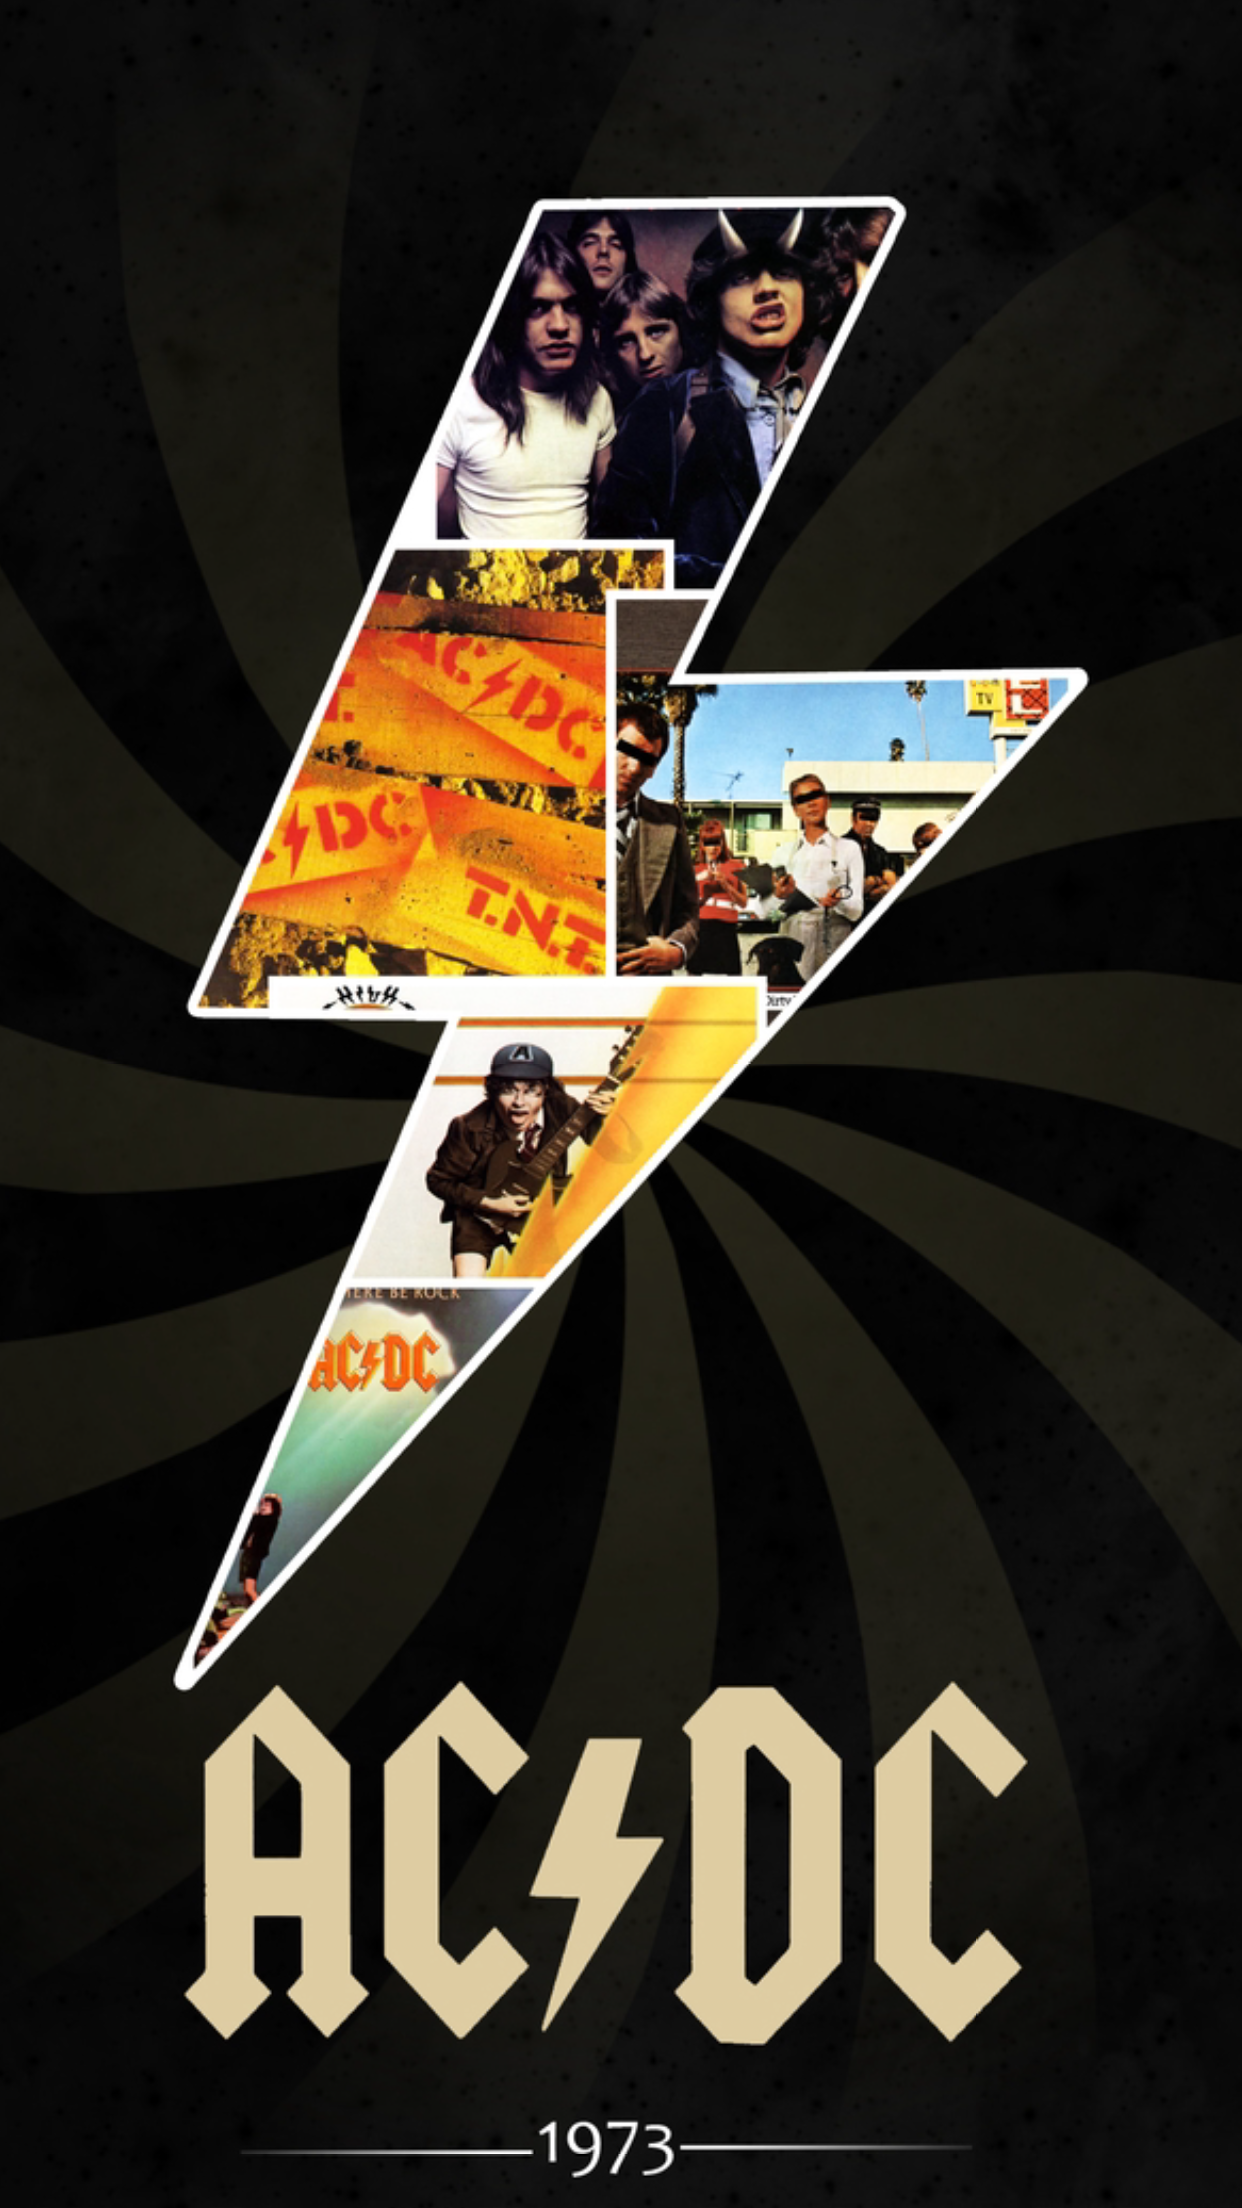 Music Acdc Thunder 3wallpapers Iphone Parallax Acdc Wallpaper Classic Rock Bands Rock Posters